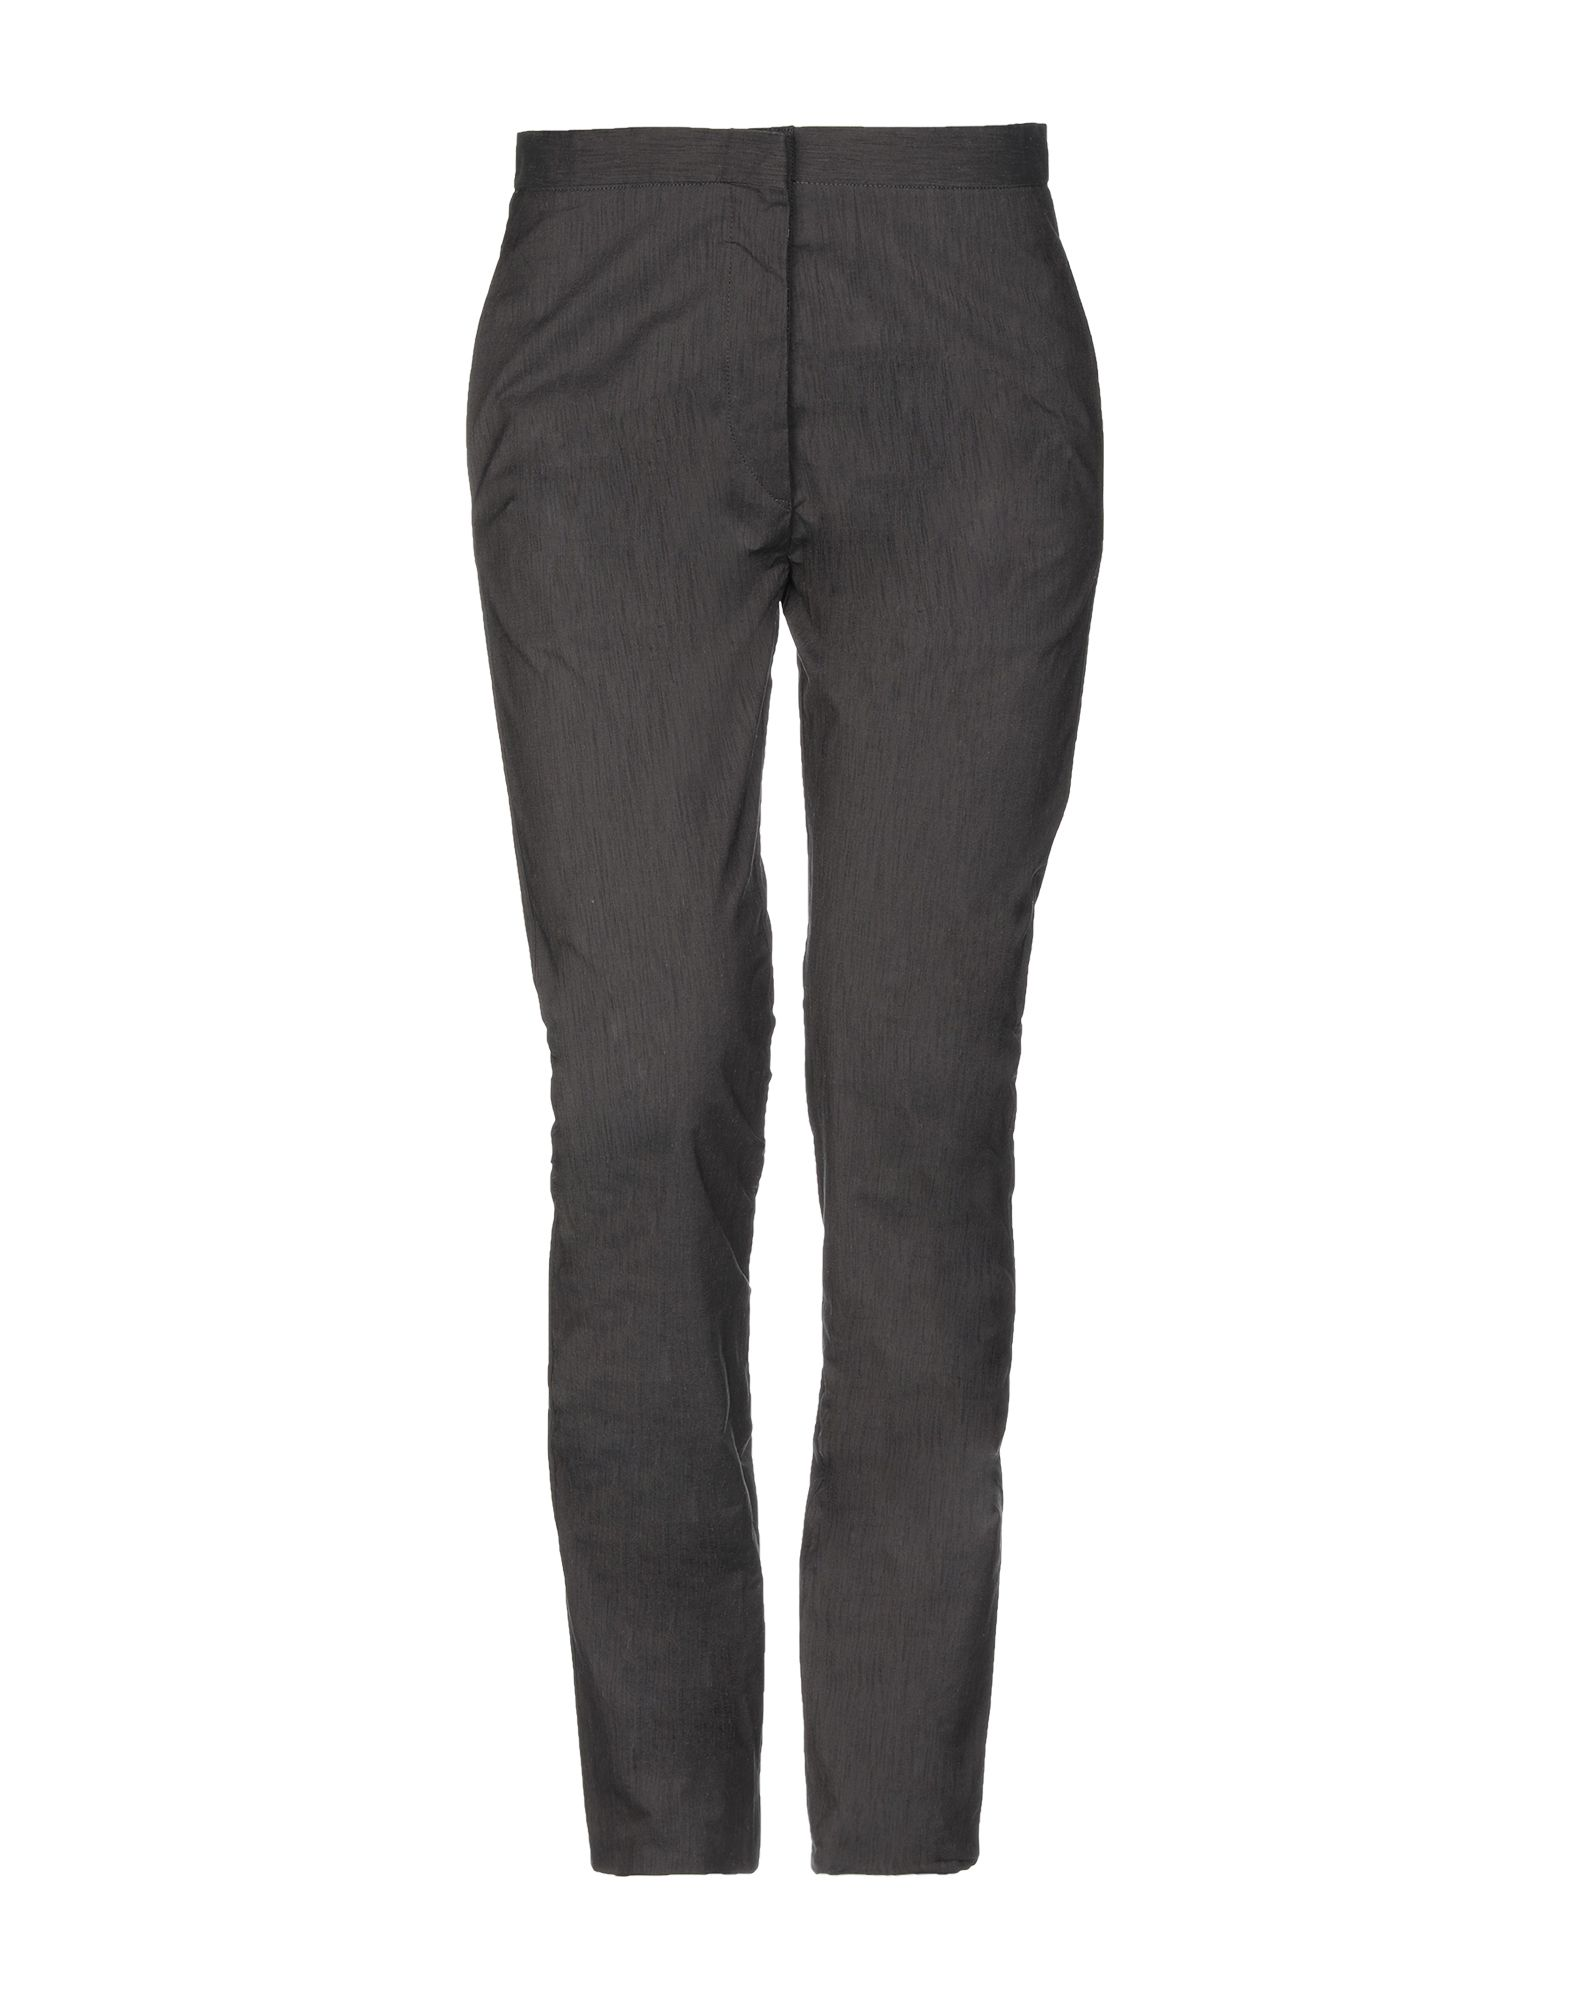 CAROL CHRISTIAN POELL Casual Pants in Lead